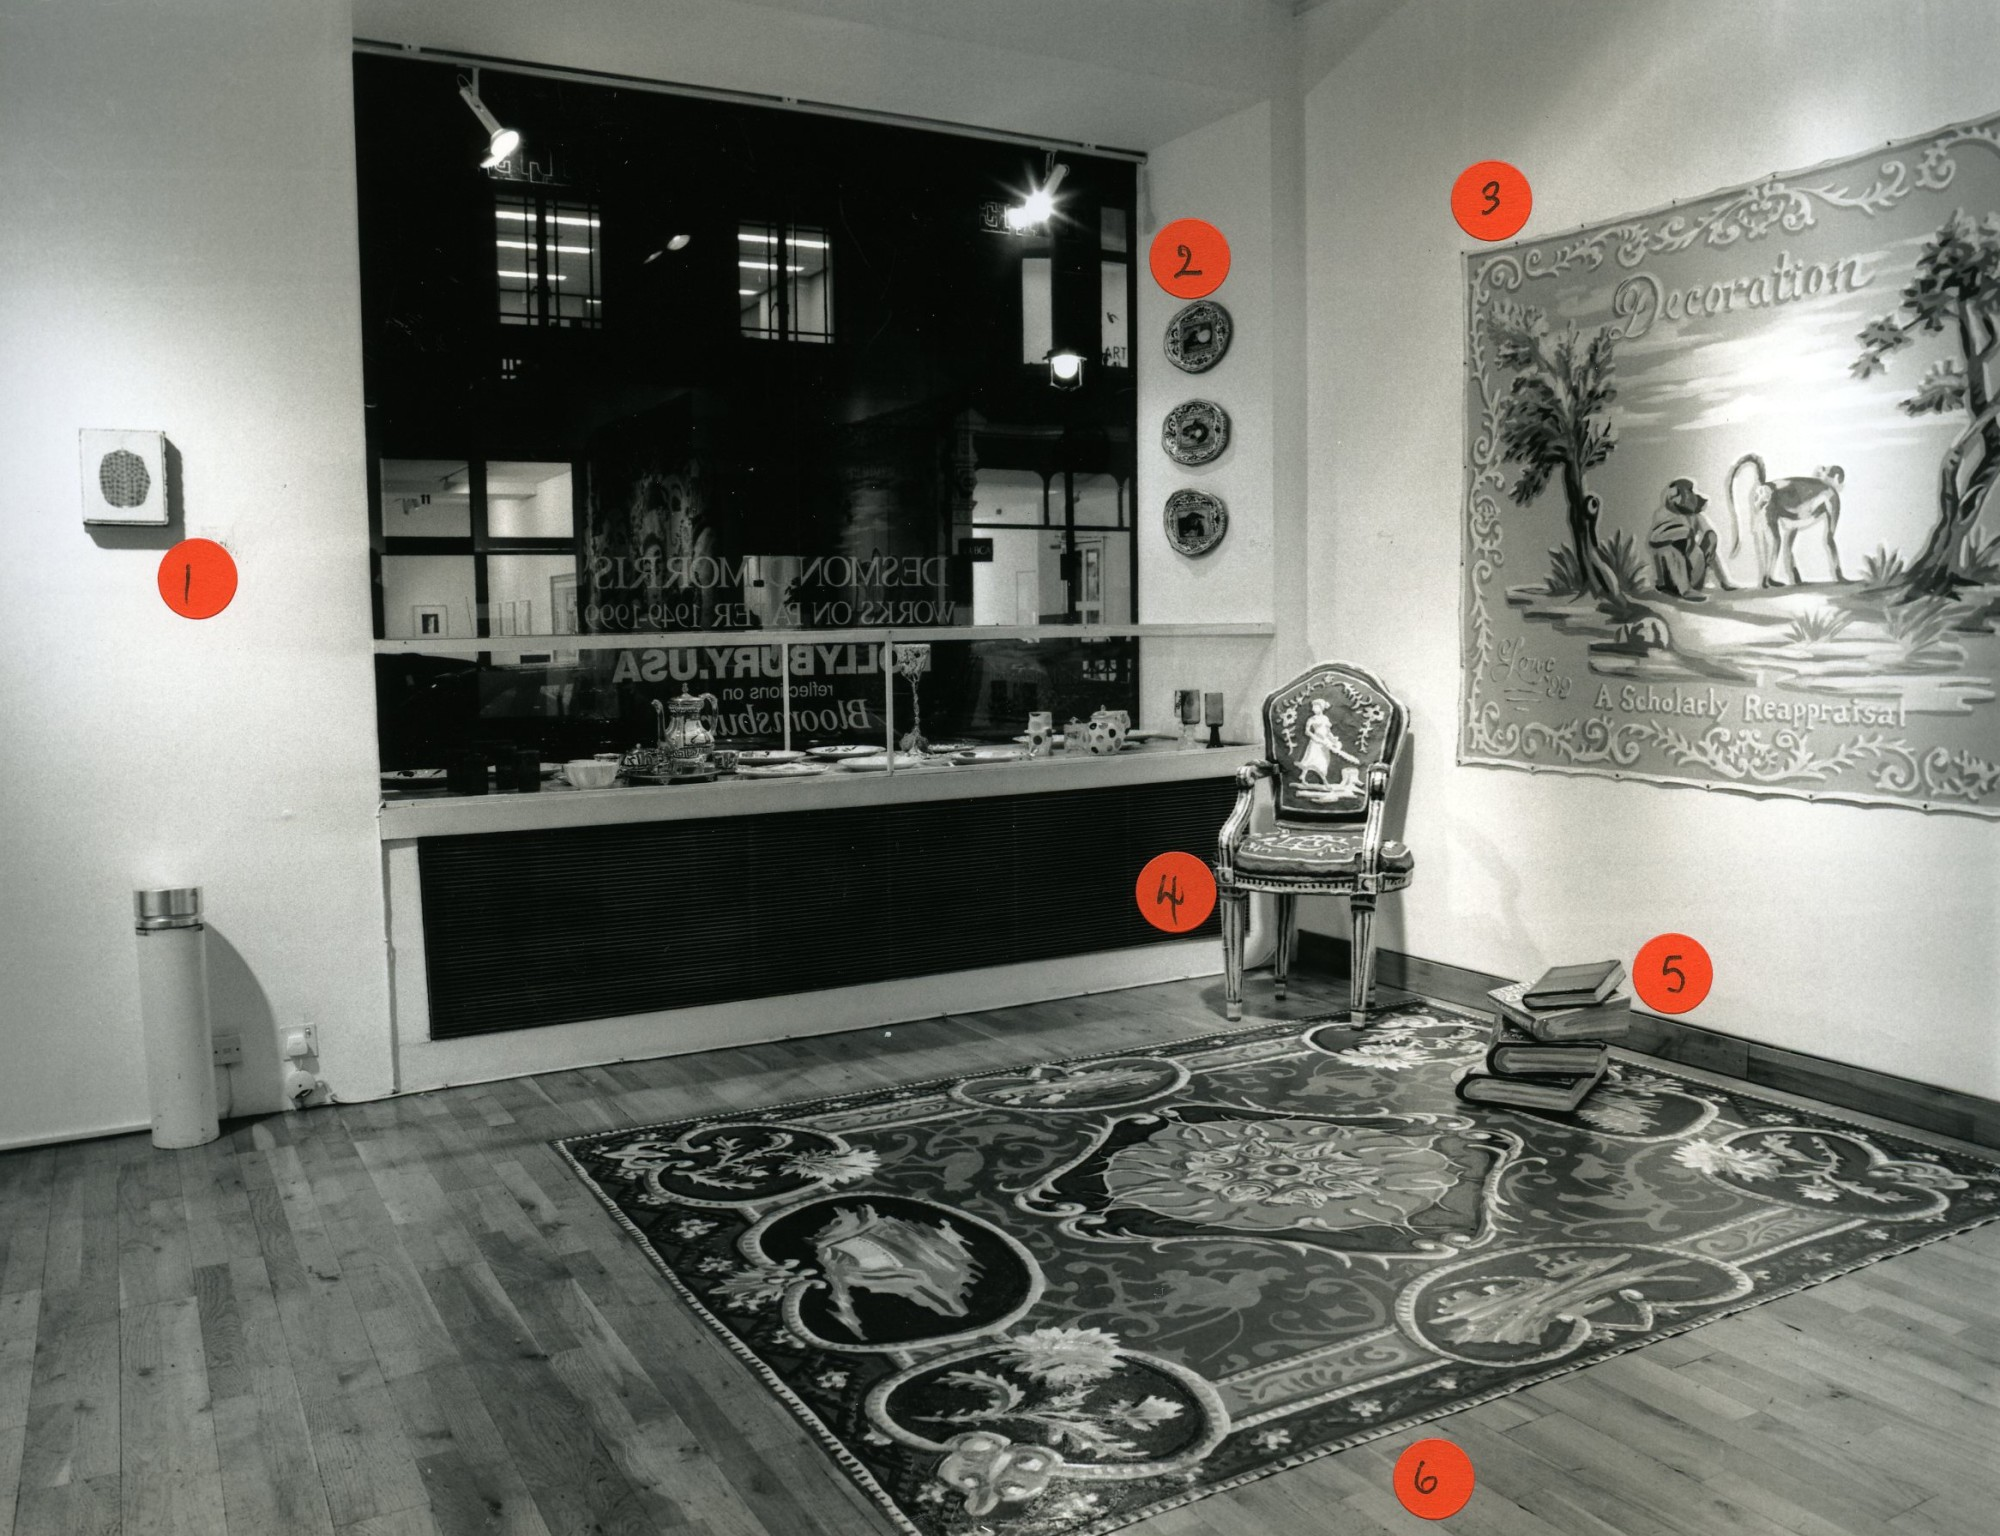 """<span class=""""link fancybox-details-link""""><a href=""""/exhibitions/153/works/image_standalone648/"""">View Detail Page</a></span><p>HOLLYBURY USA   A REFLECTION ON BLOOMSBURY   23 NOV - 23 DEC 1999   Installation View</p>"""